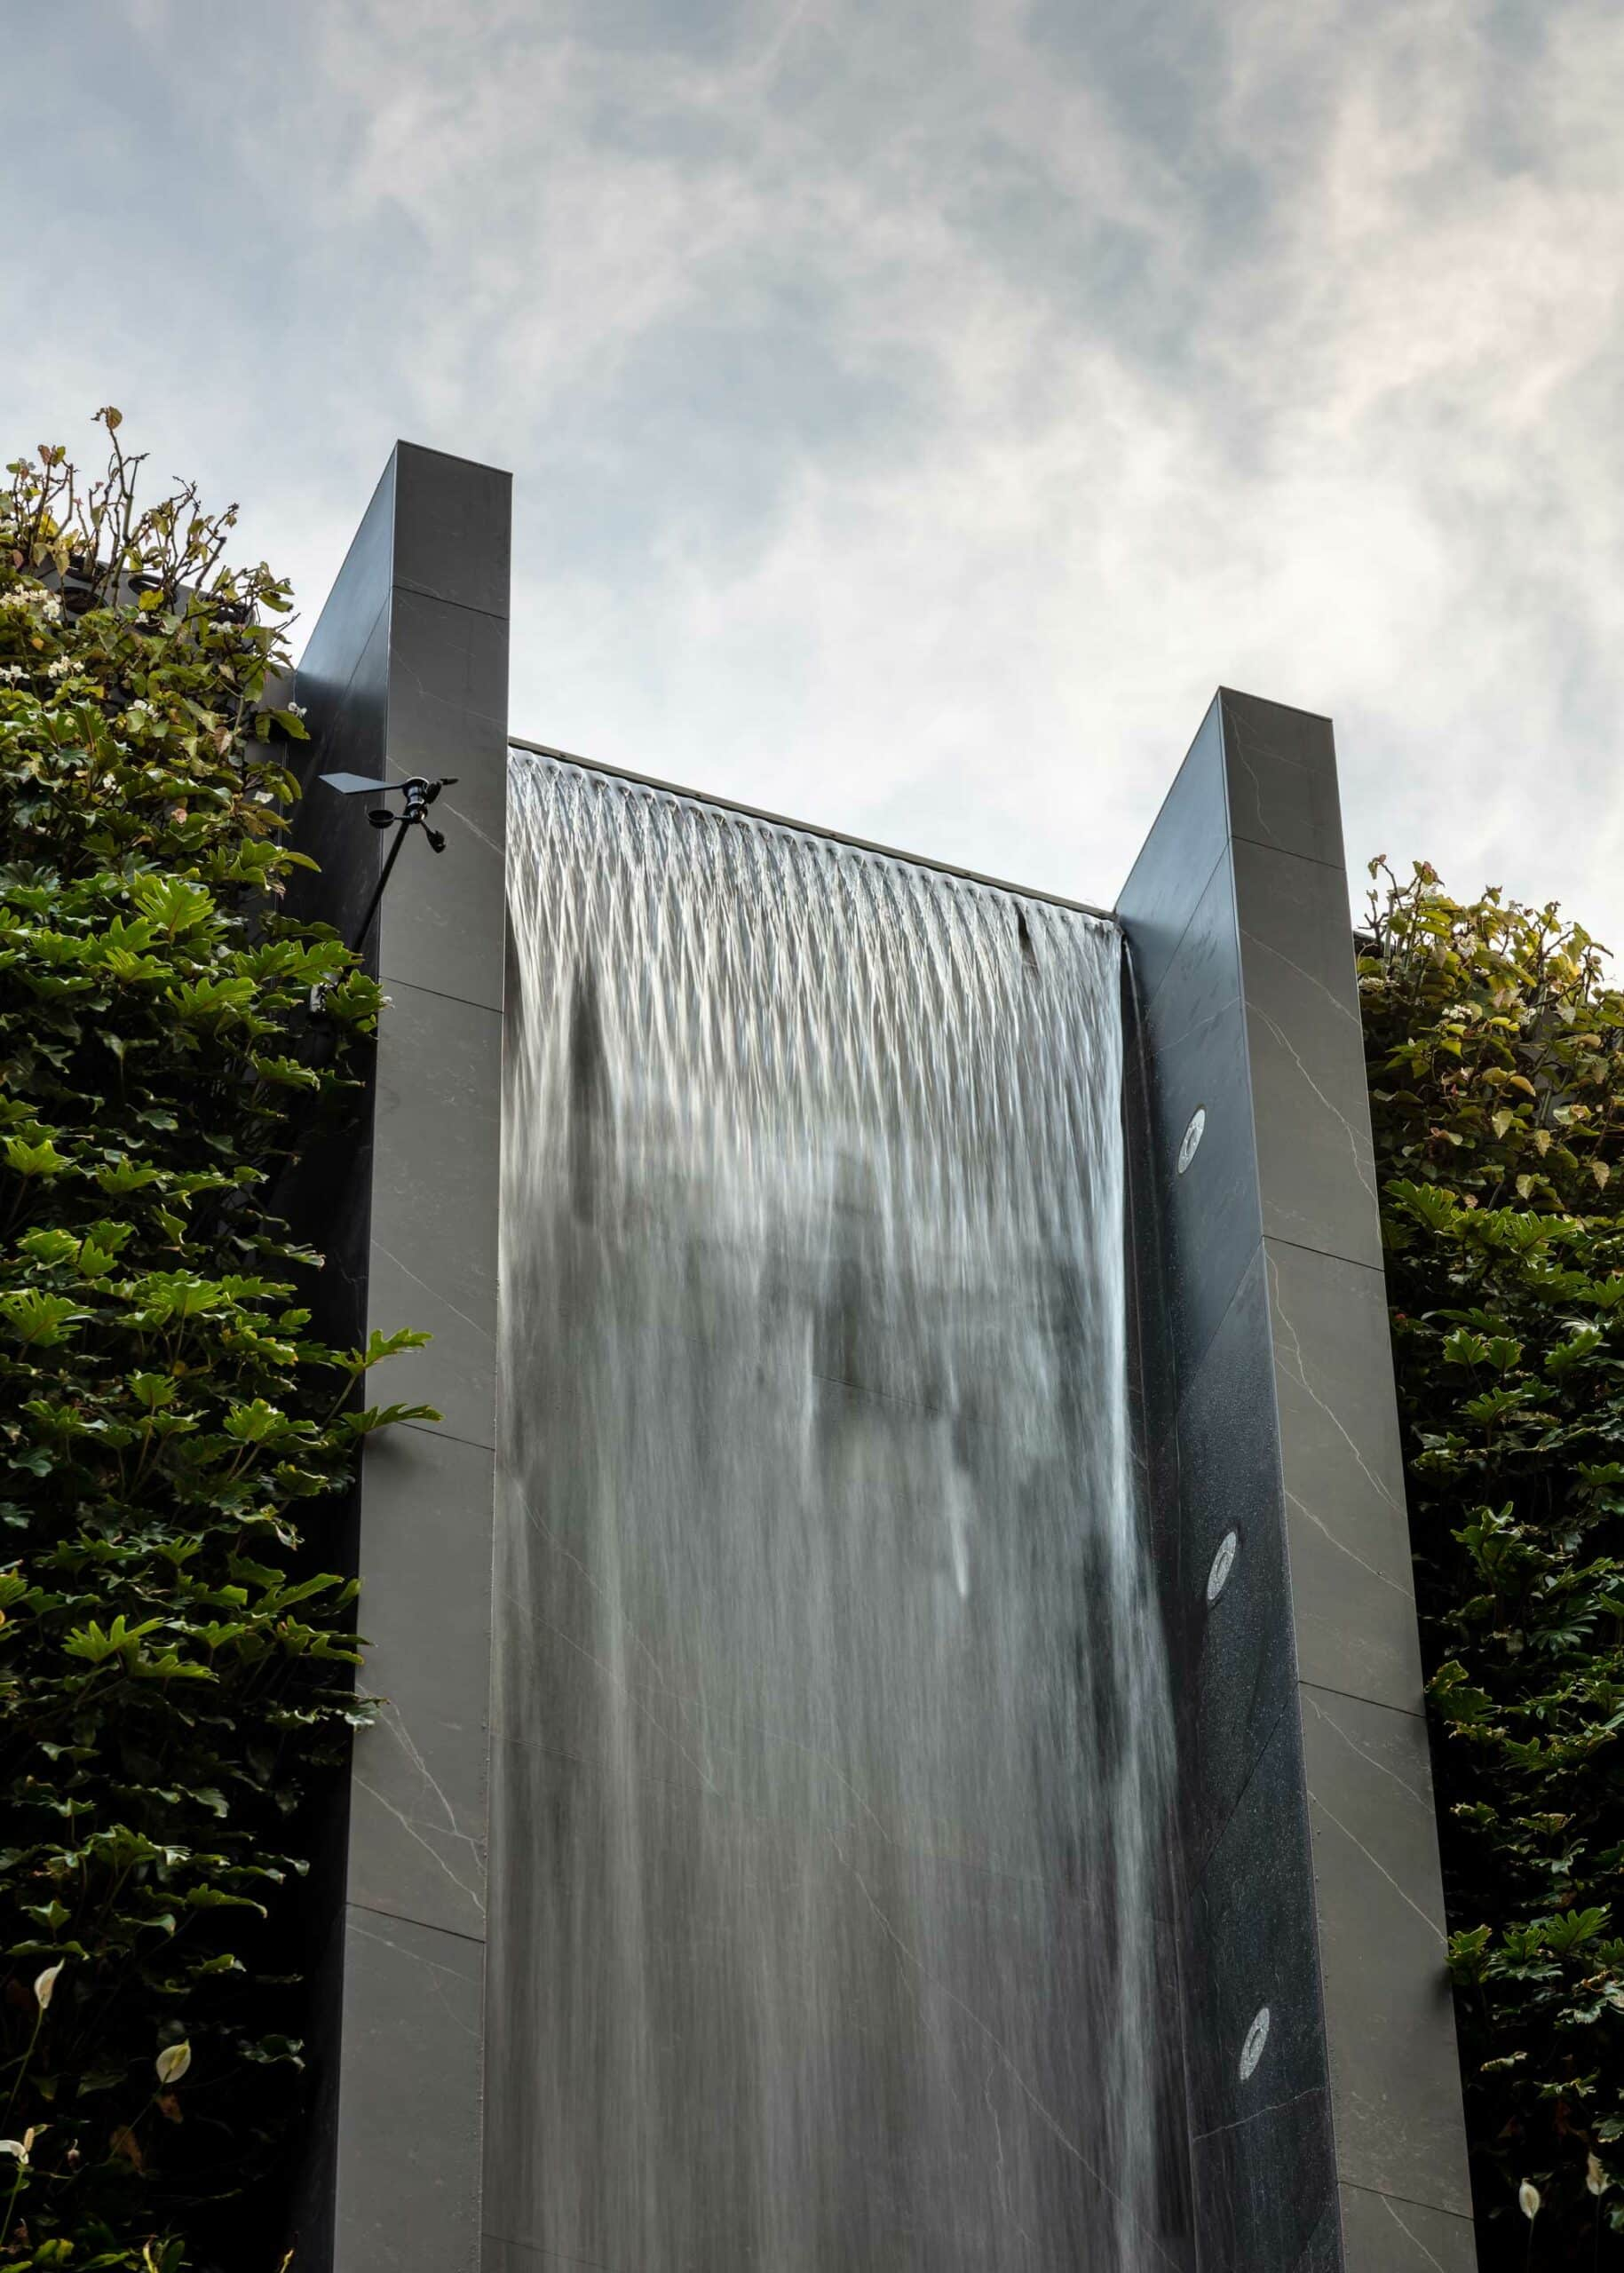 Urban waterfall  - Waterfall Dekton 5 scaled 348